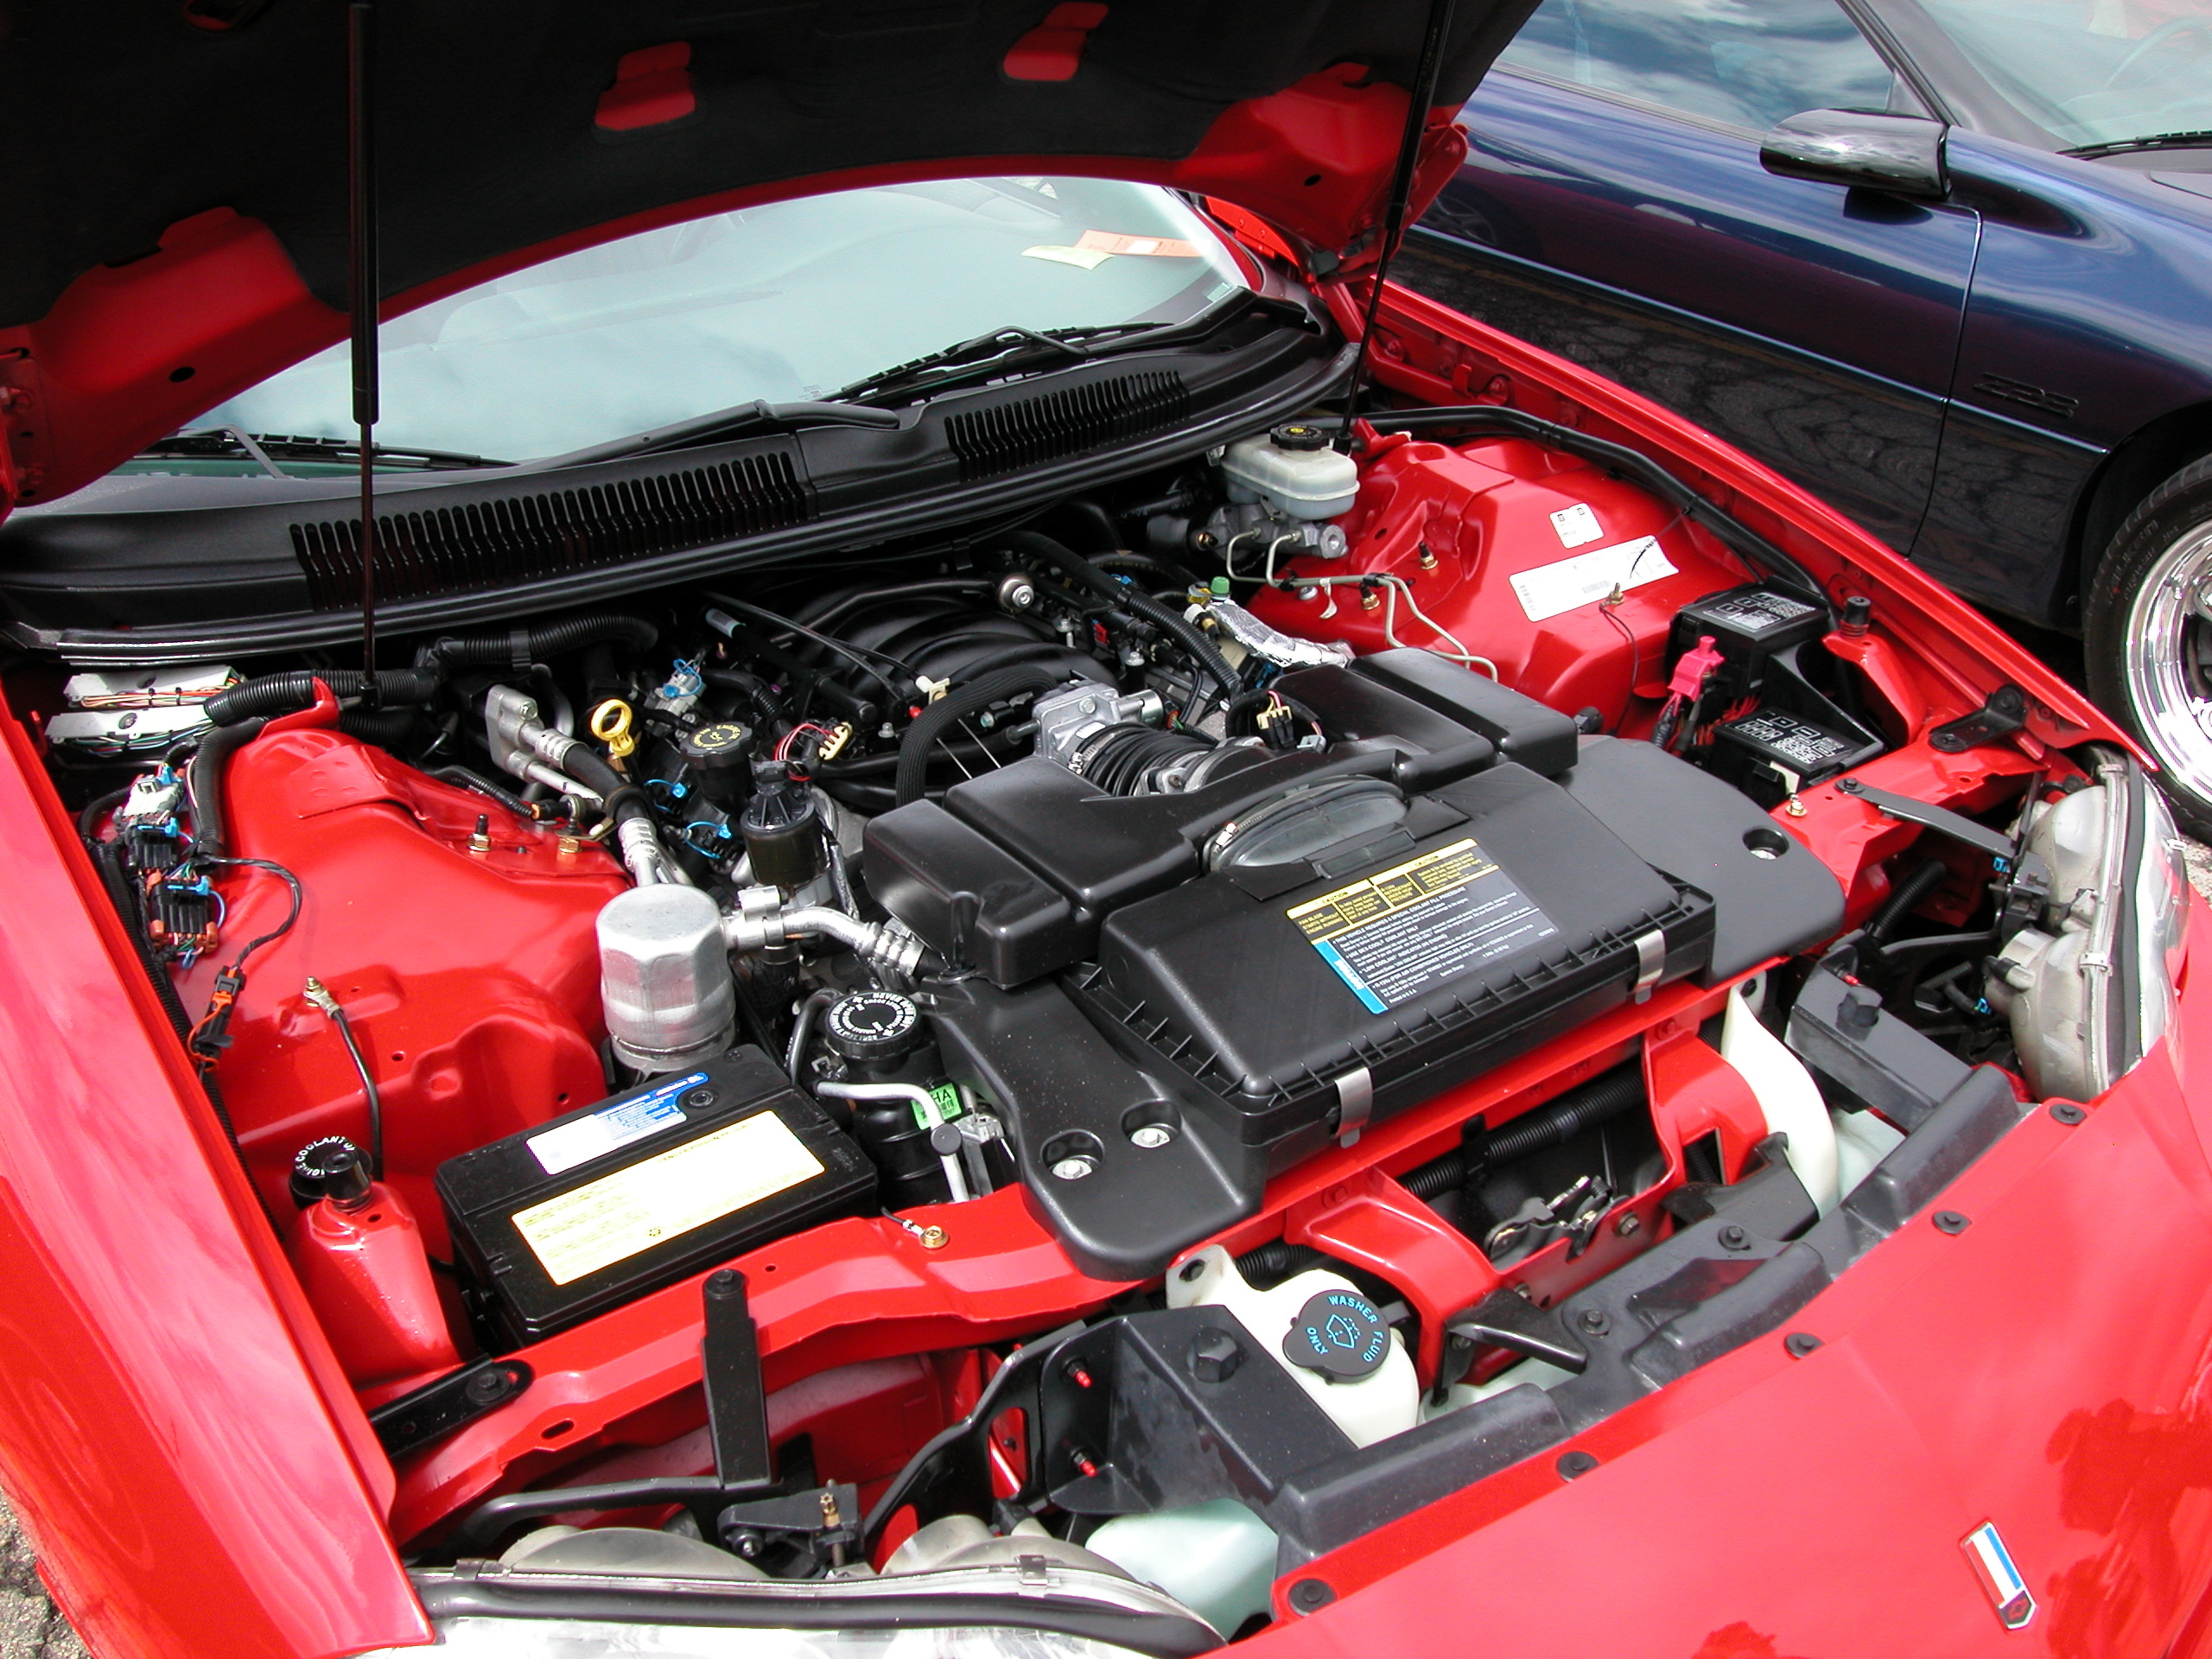 File:1998ChevroletCamaroZ28-engine.jpg